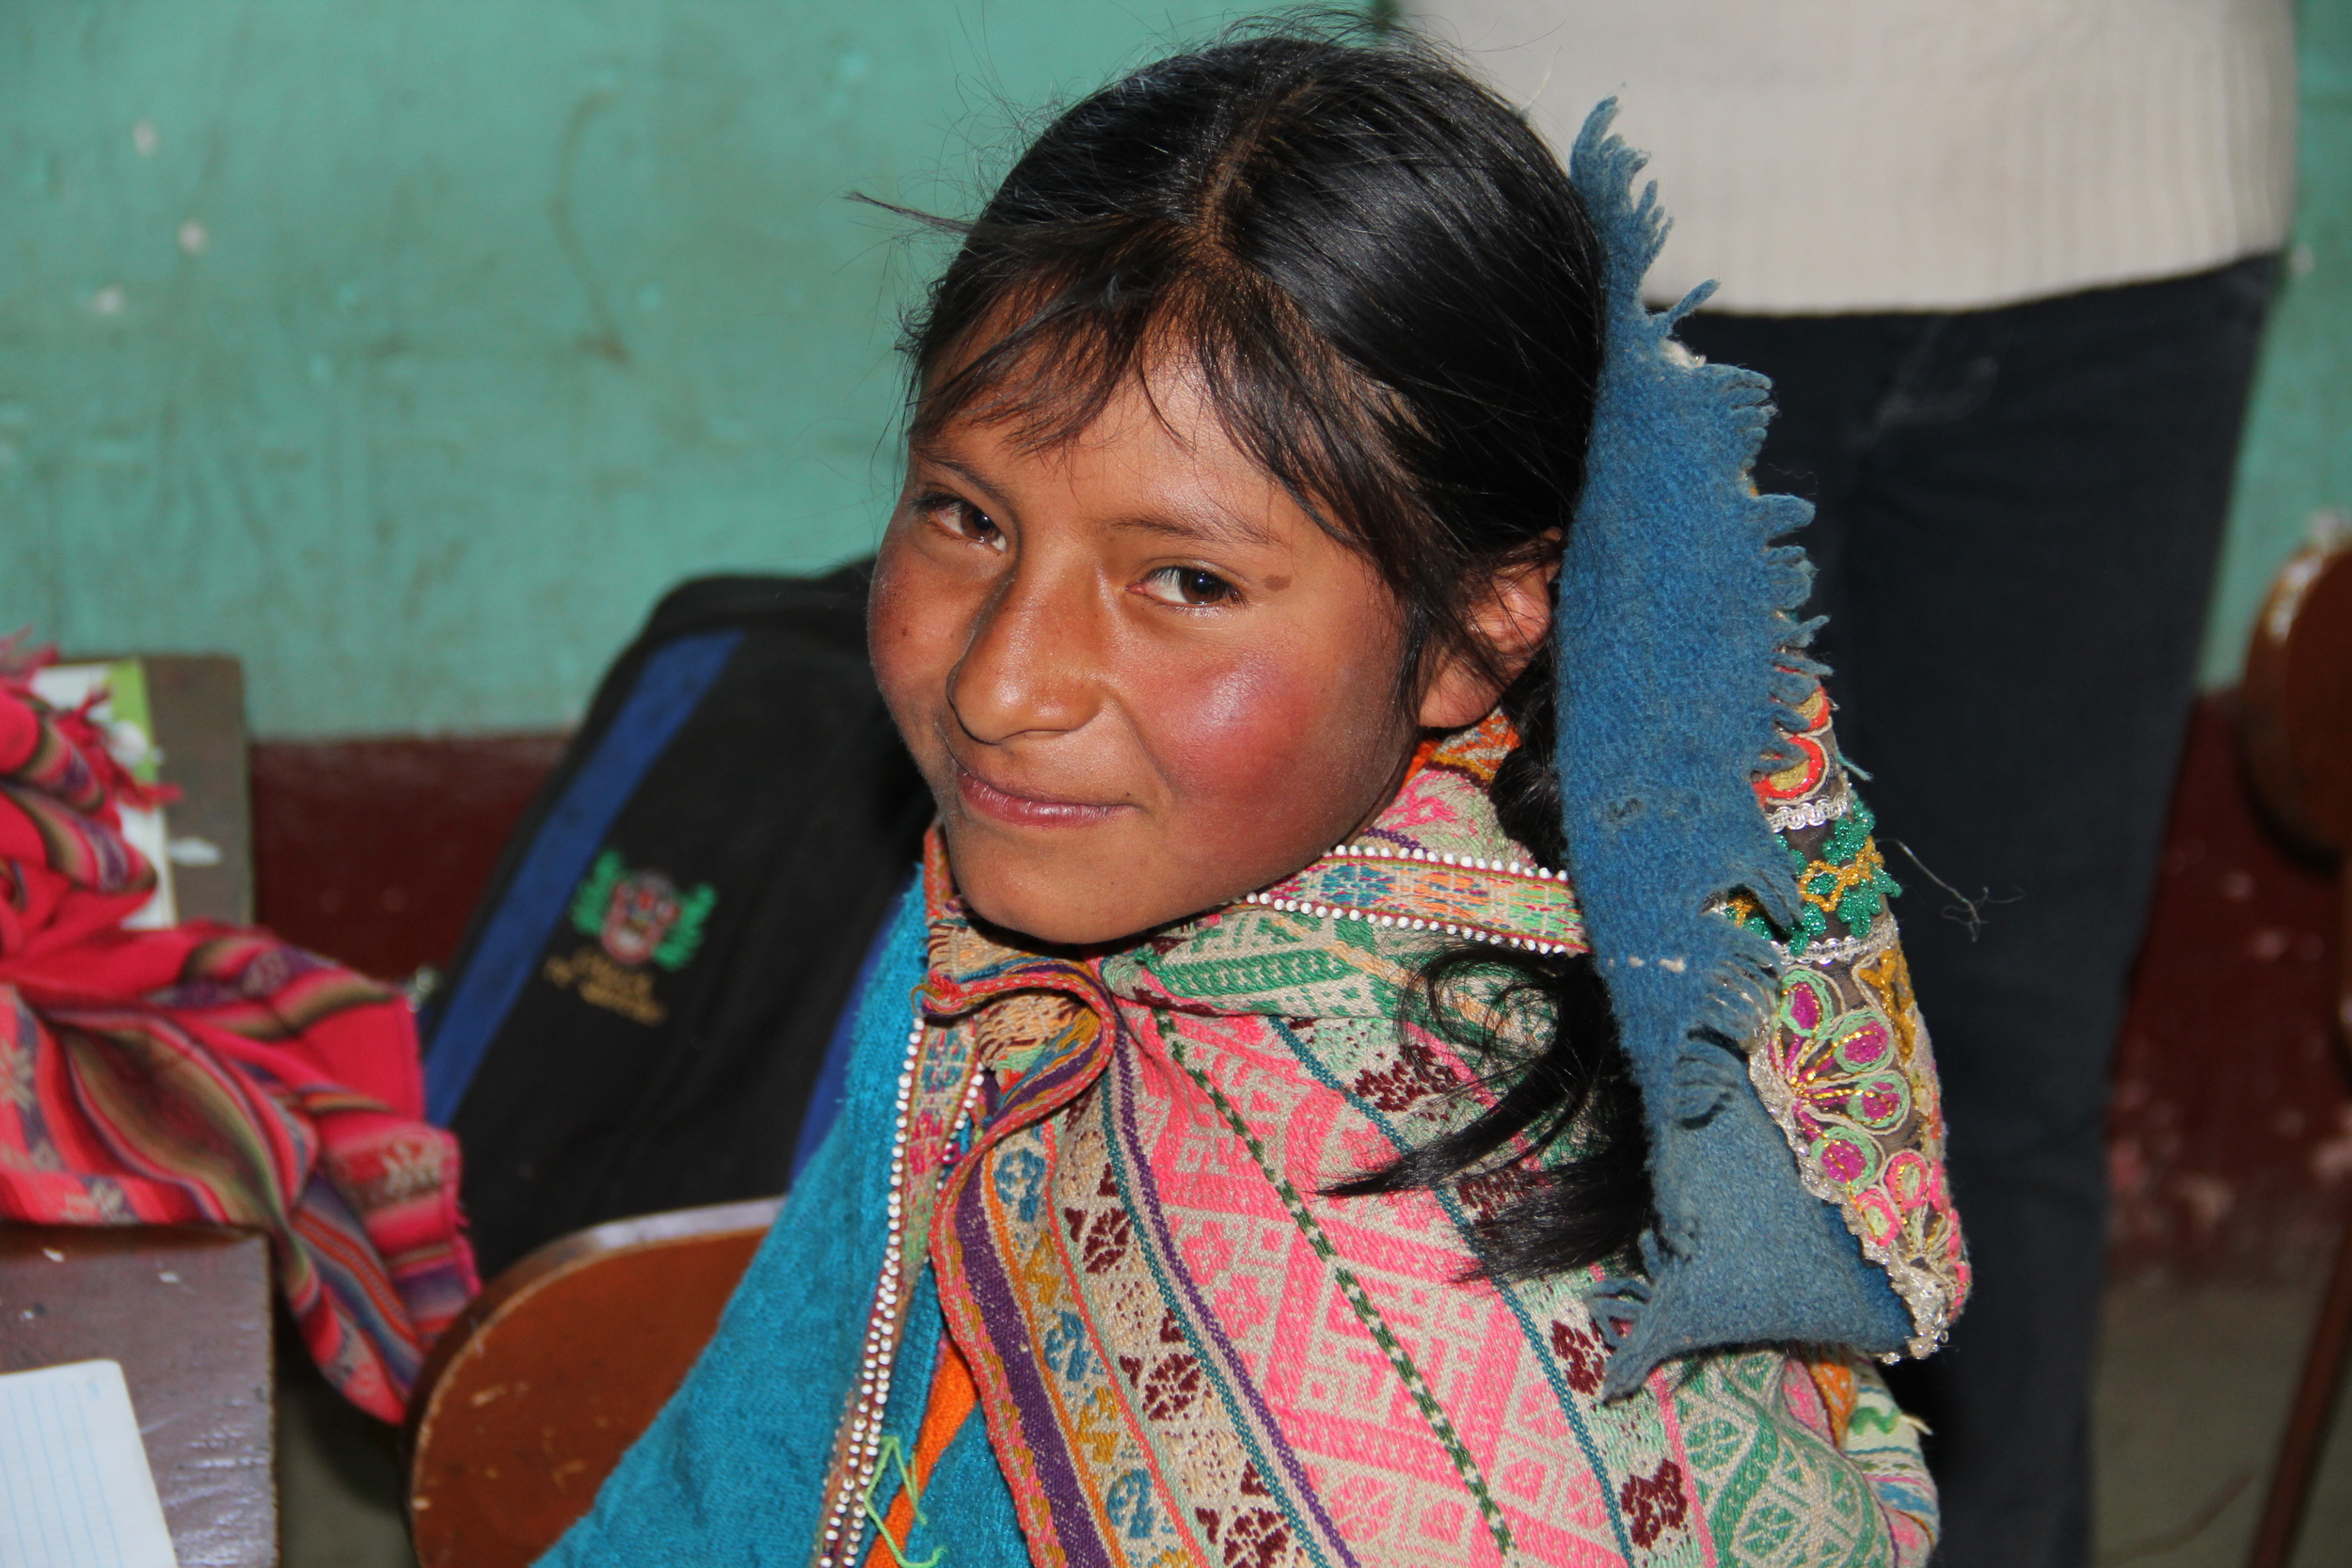 A beautiful child in the village of Pampallacta, Peru where our team was serving chiropractic.